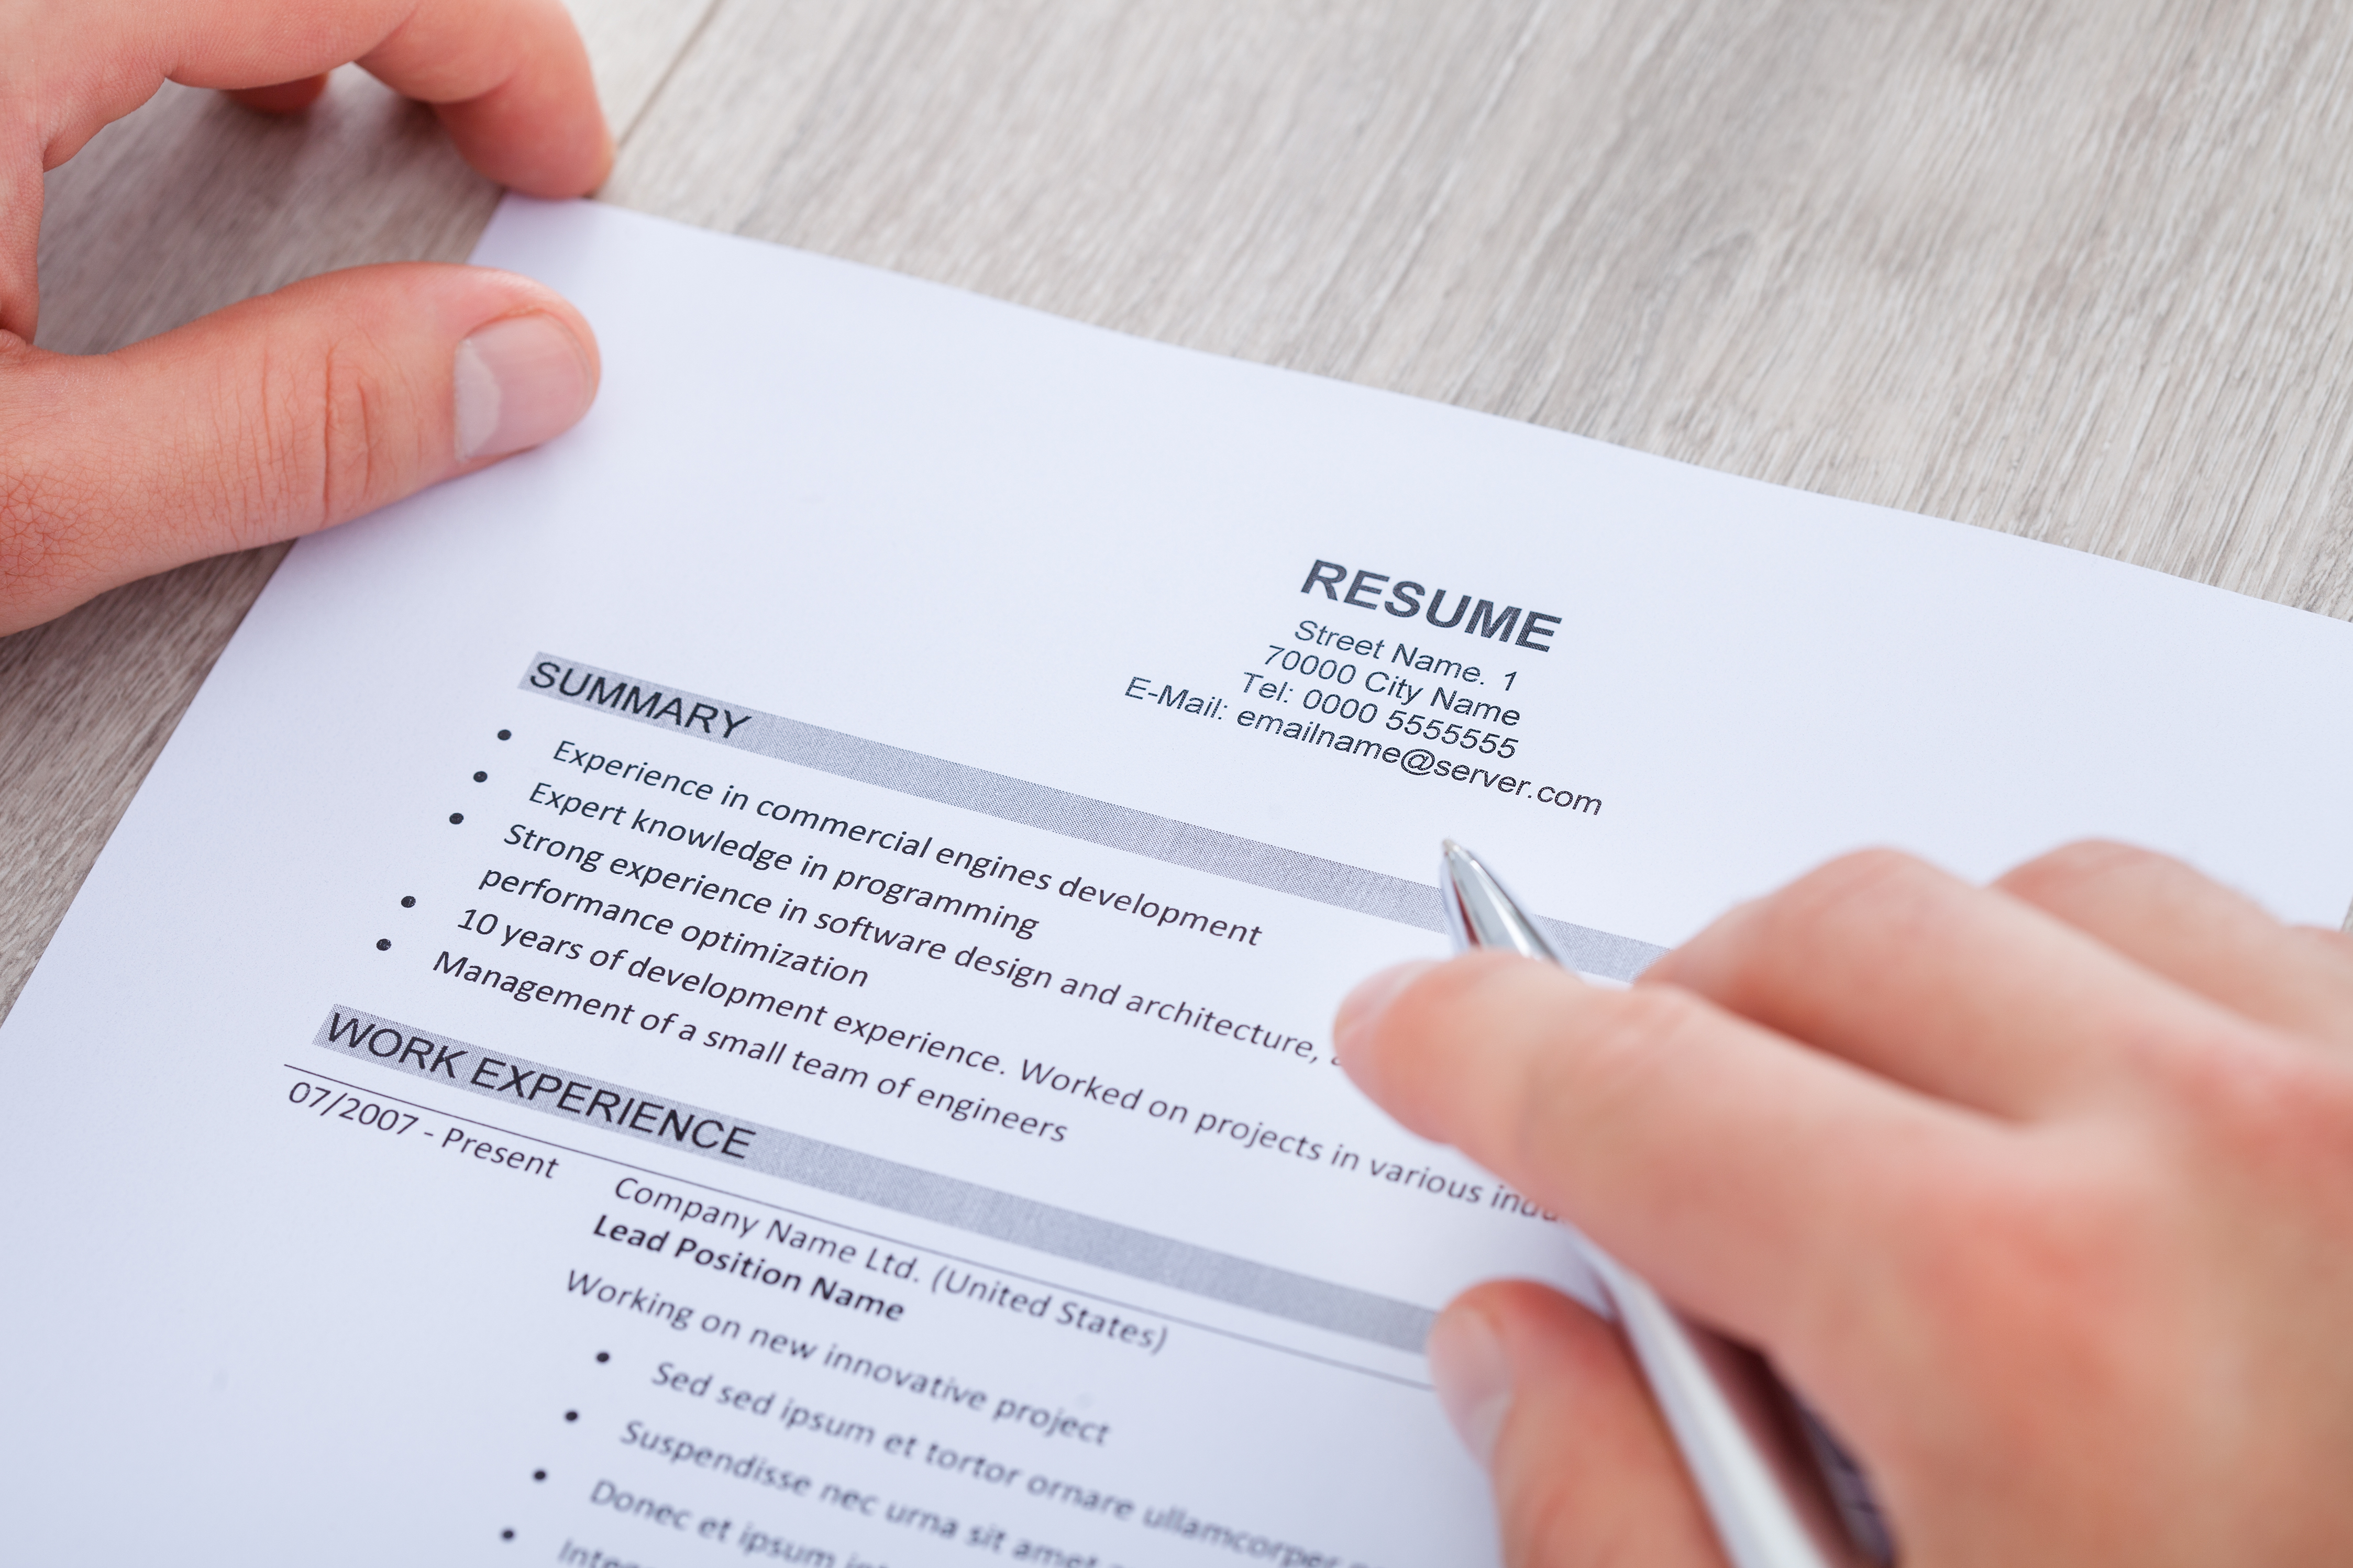 Professional resume services online victoria bc